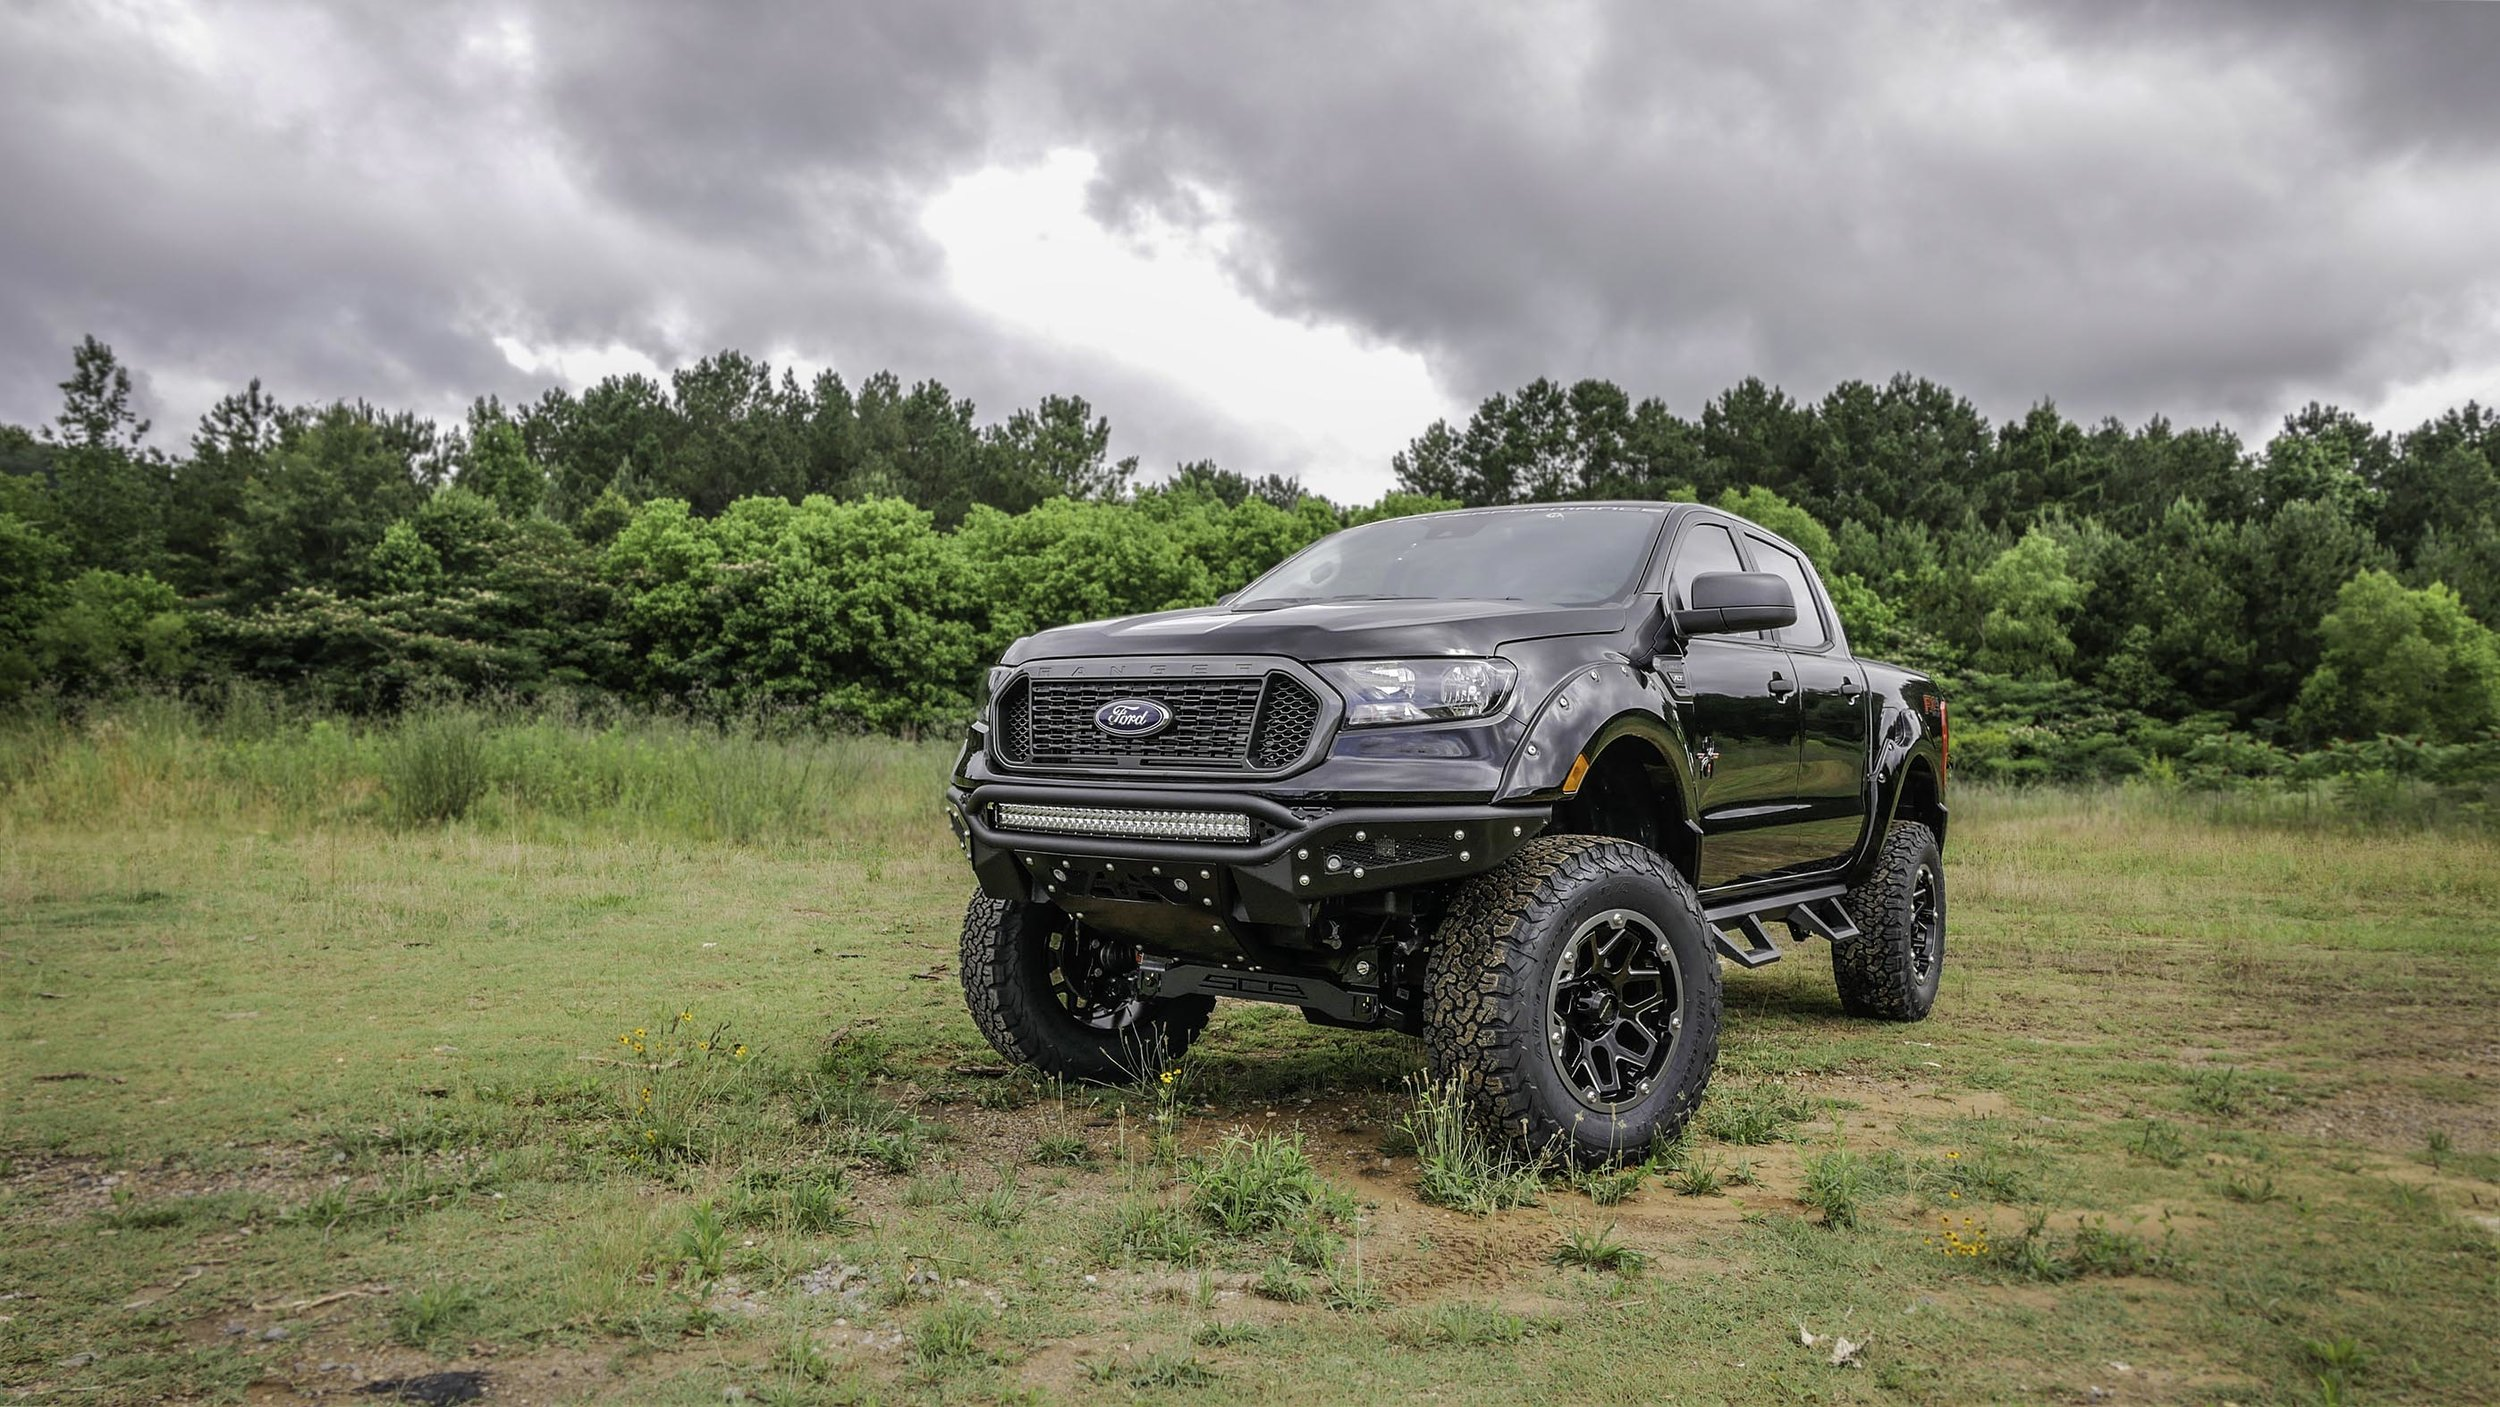 Ford Ranger Black Widow with Bumper.jpg